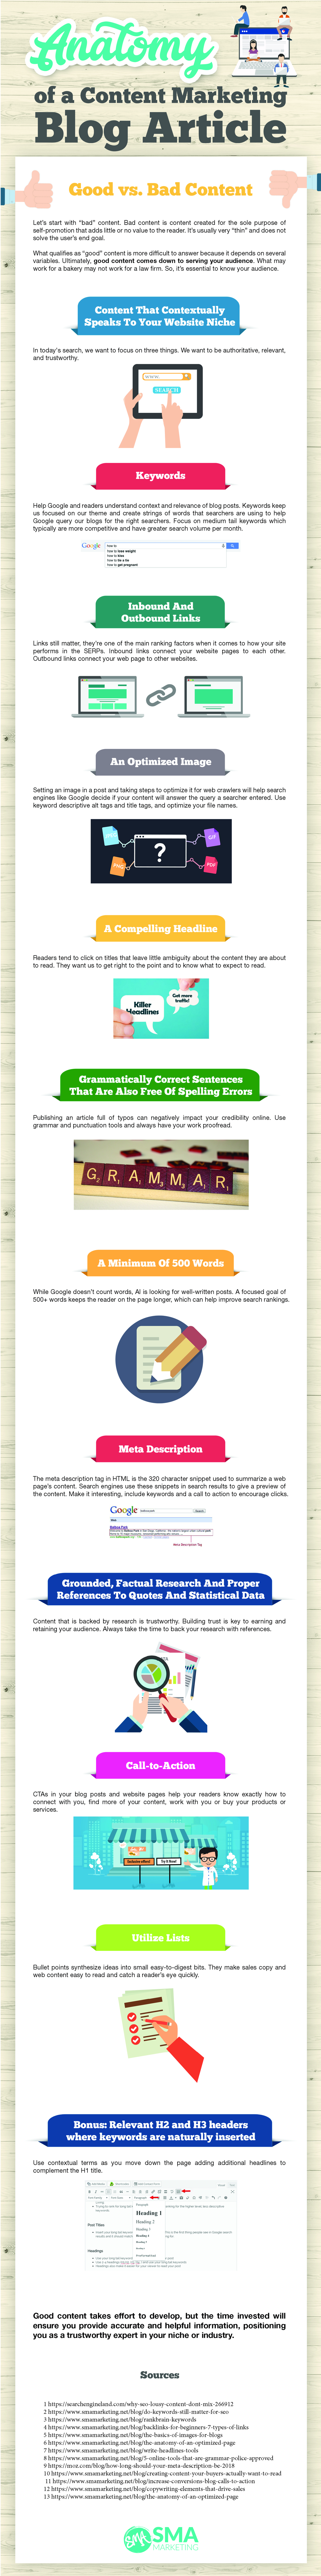 Anatomy of a Content Marketing Blog Article (Infographic)